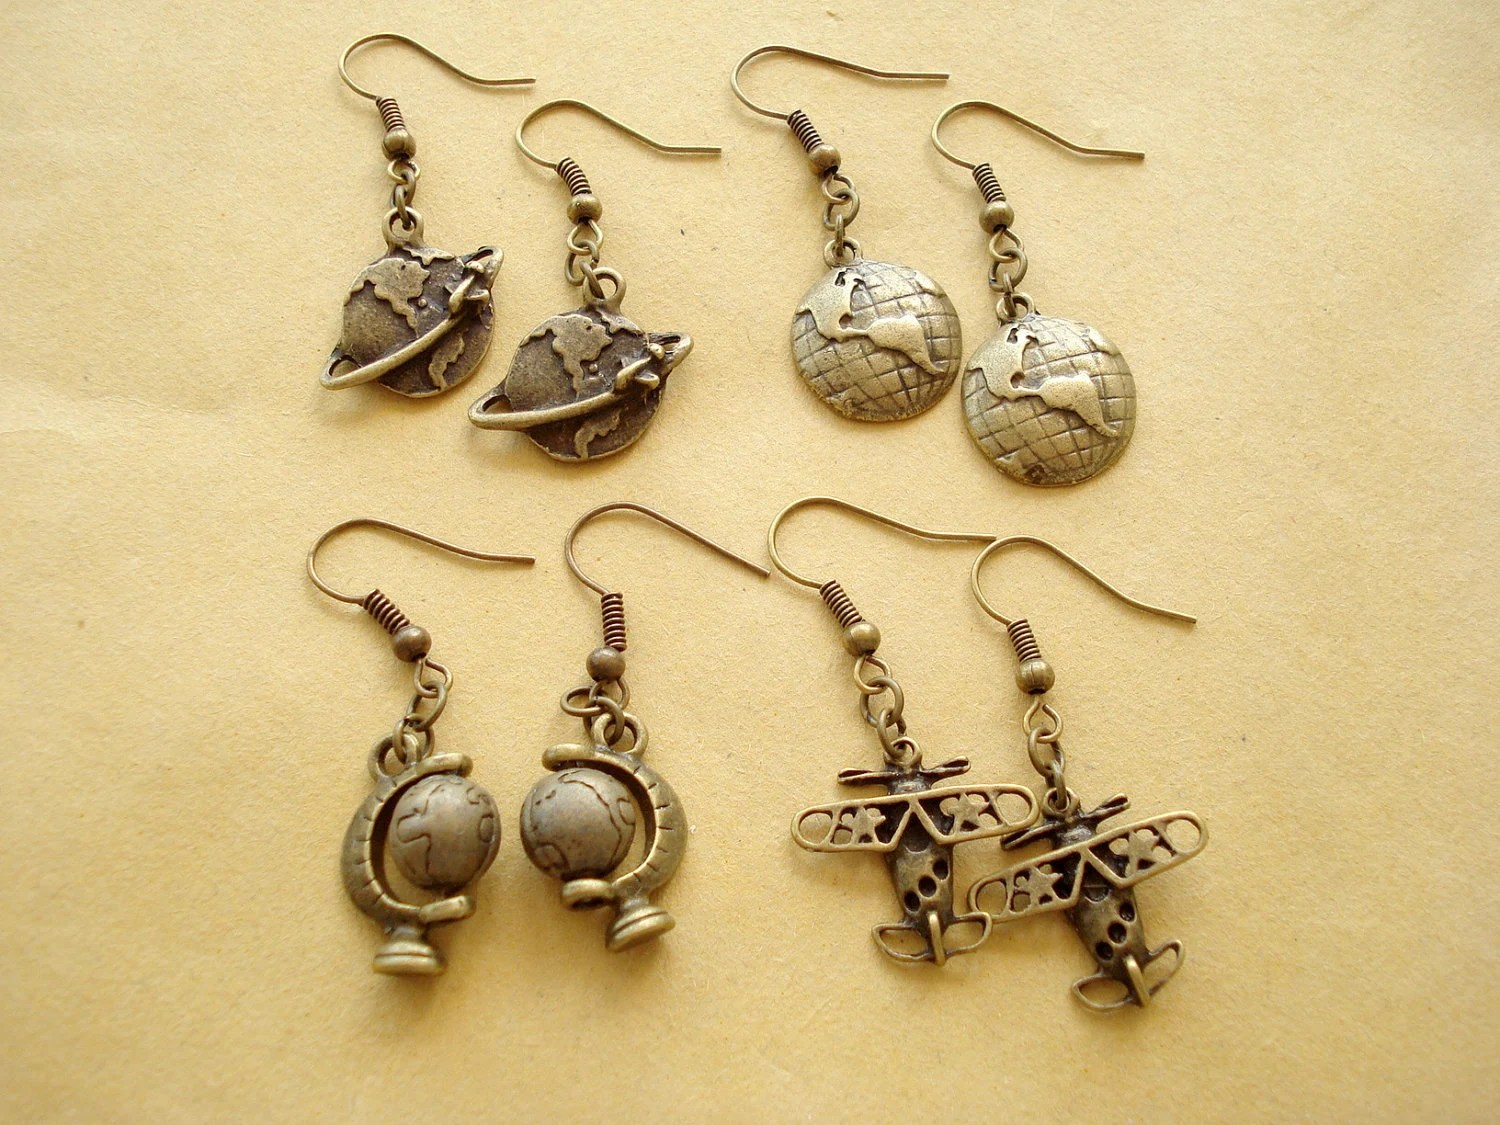 4 Pairs of Around the World Earrings / Antiqued Bronze